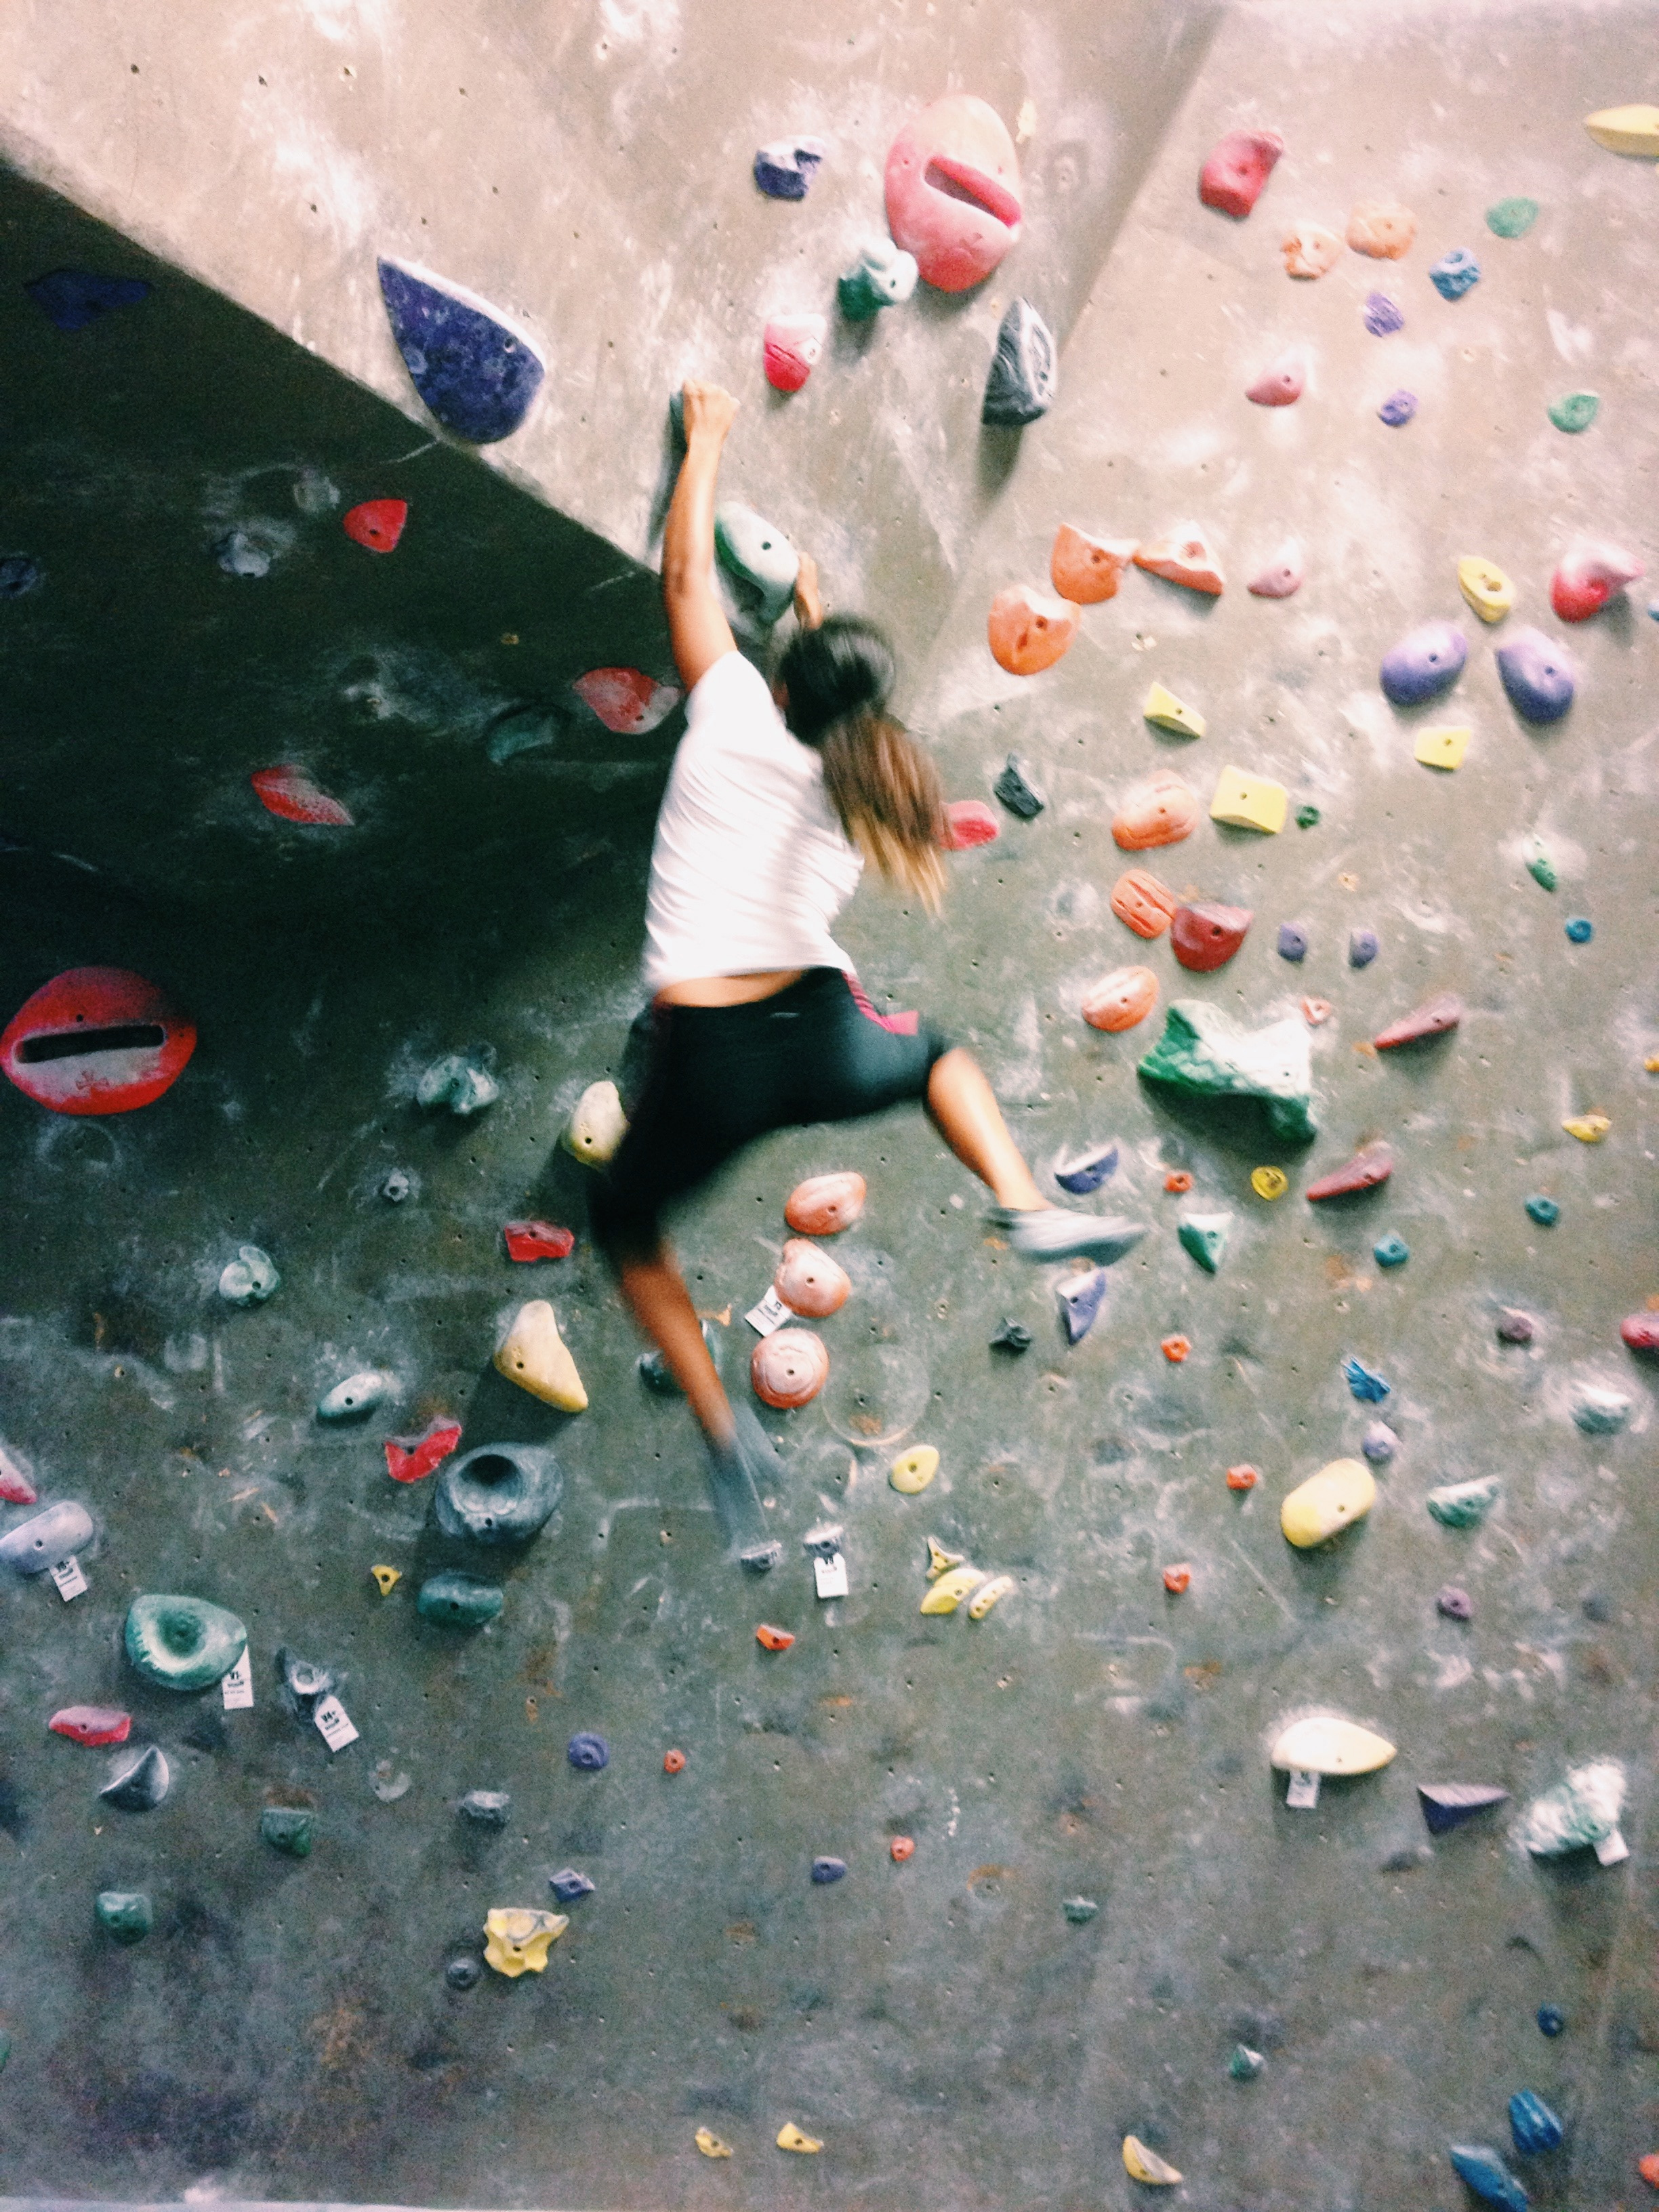 Started climbing this semester. Now I am totally addicted.